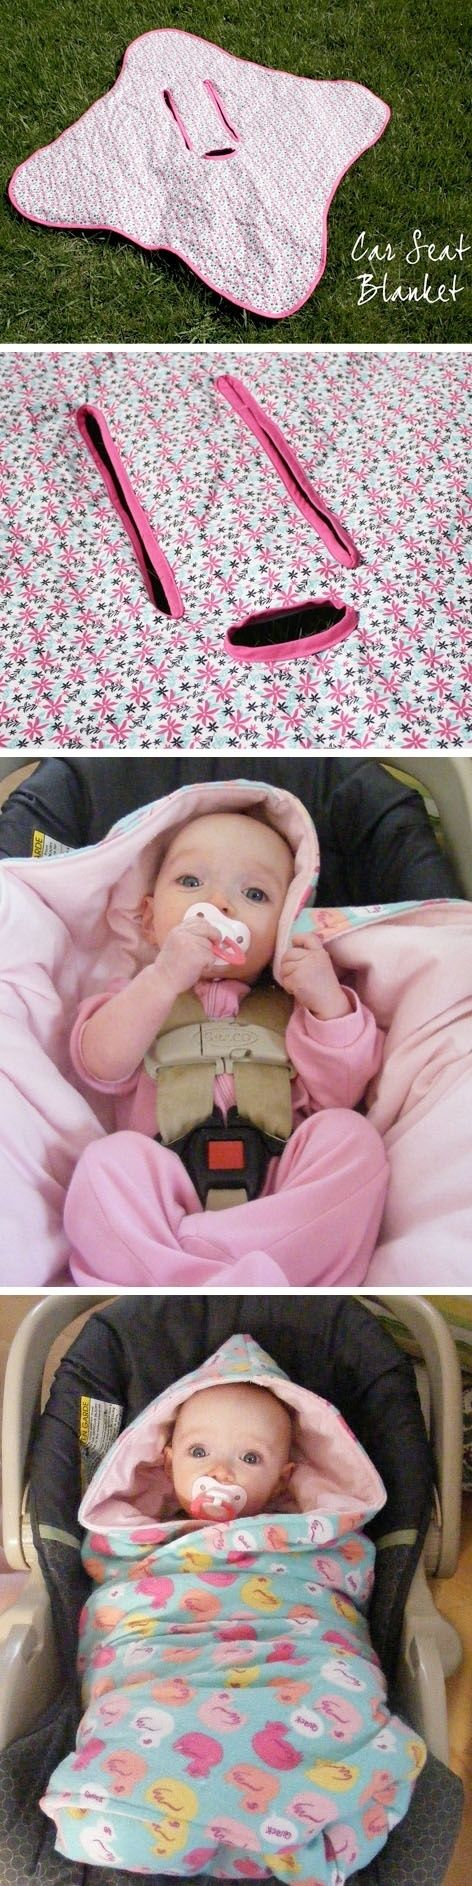 Genius DIY: Baby car seat blanket Clever idea! Need to make for fall/winter